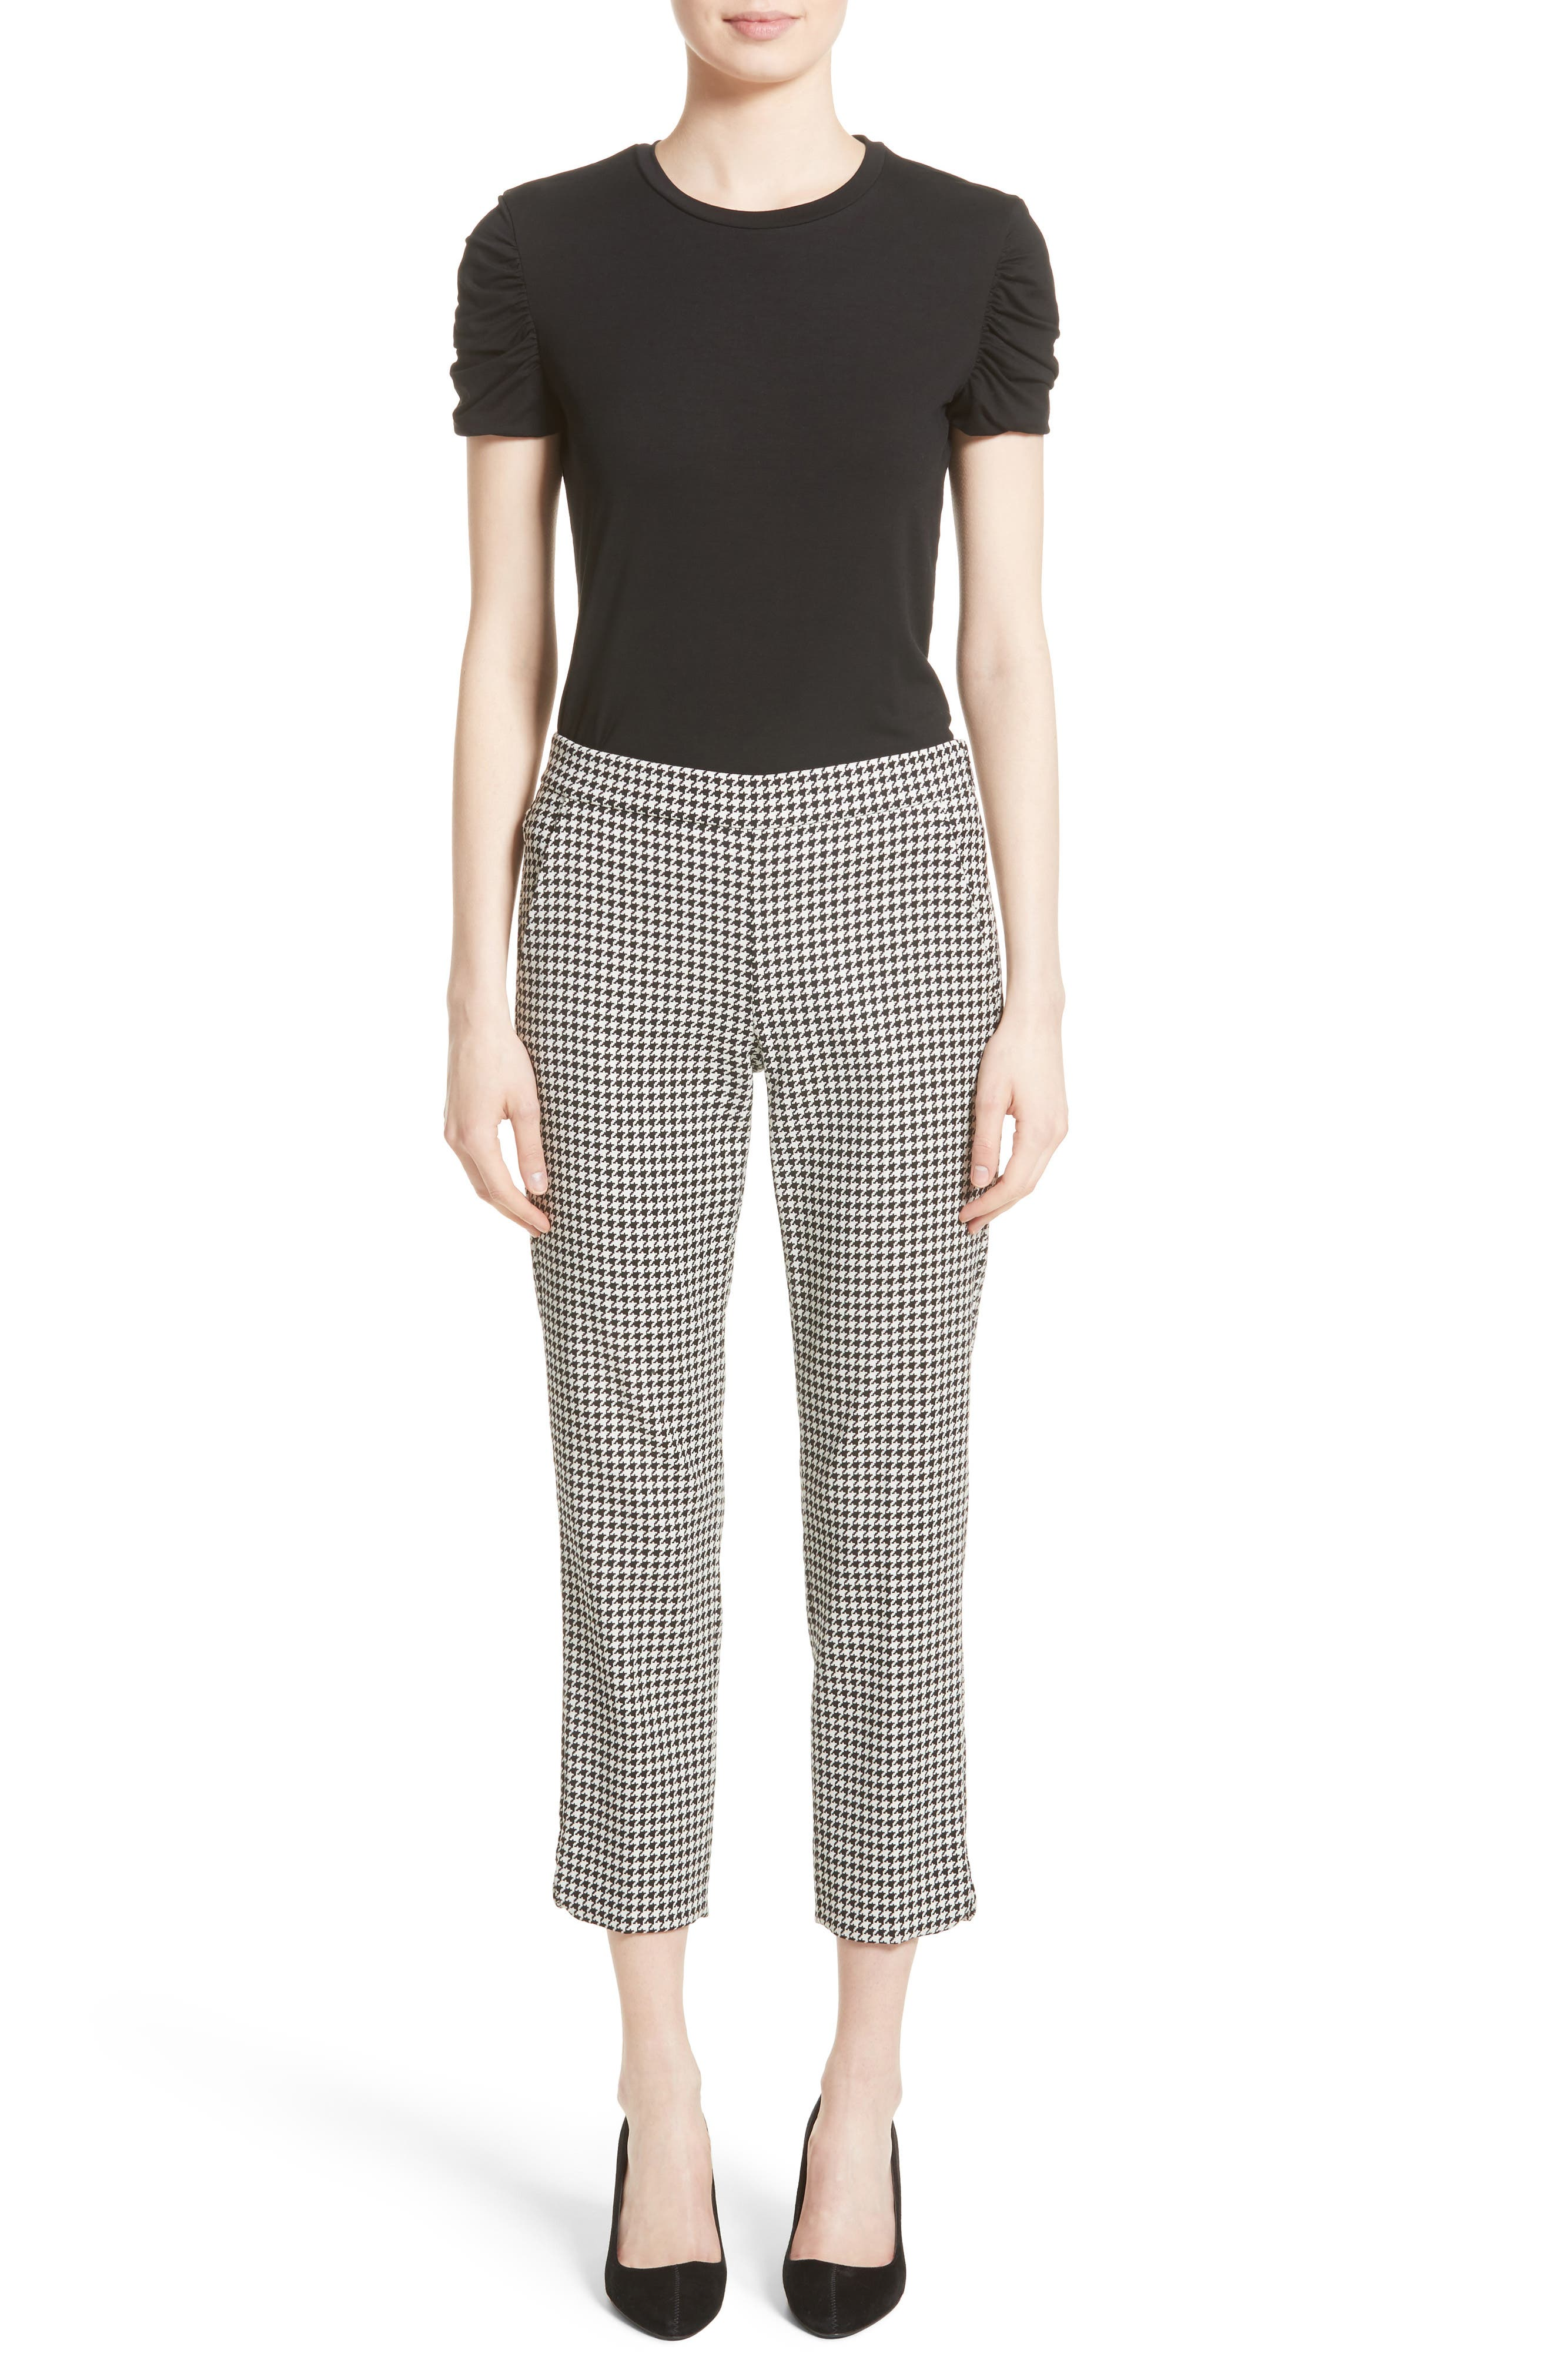 Astrale Houndstooth Wool Blend Pants,                             Alternate thumbnail 6, color,                             001